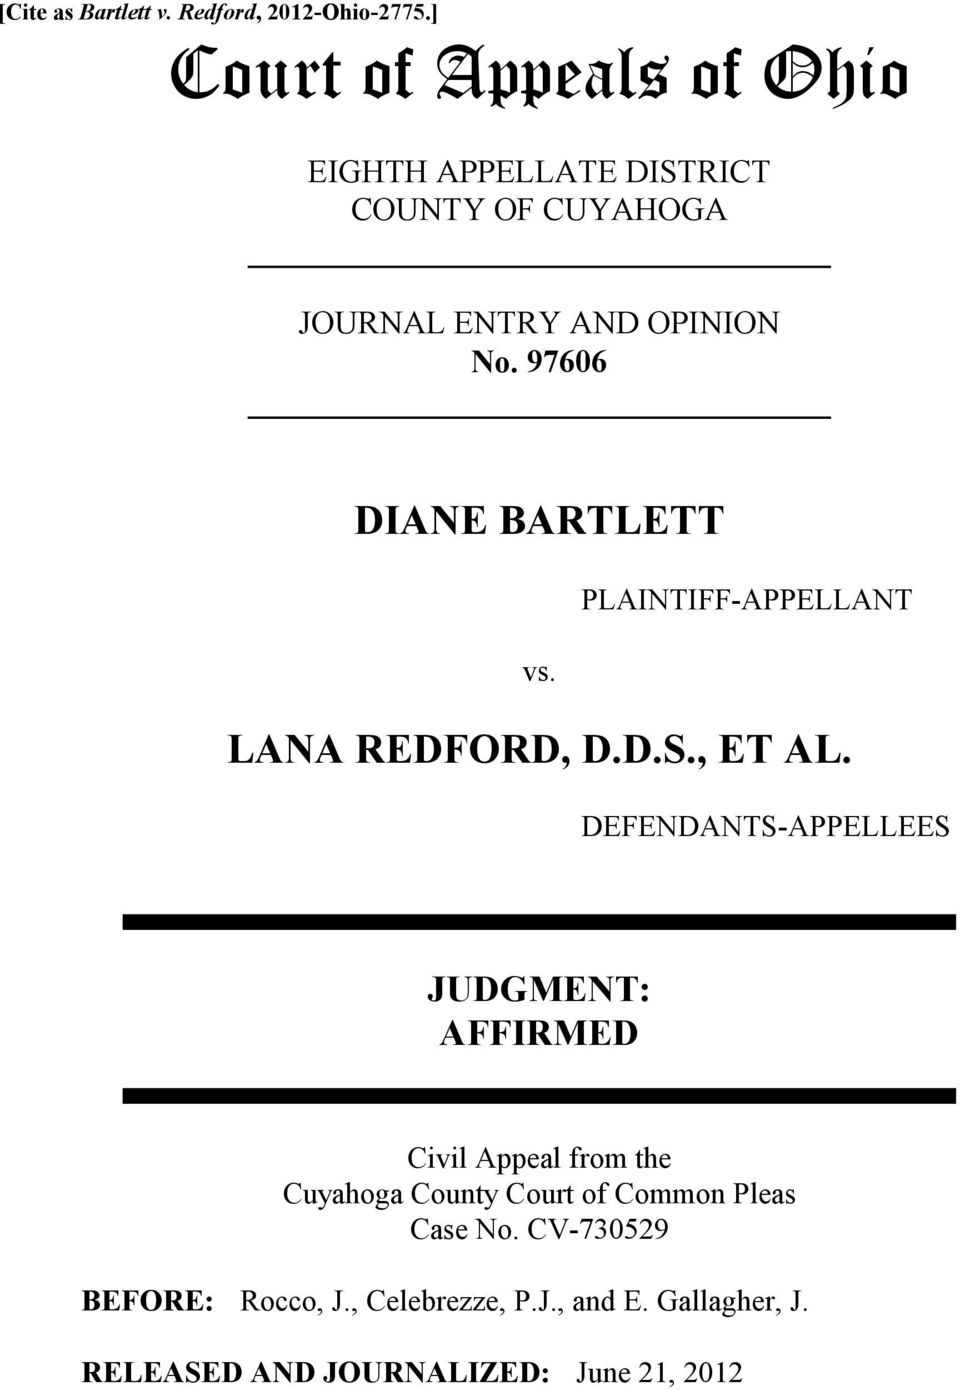 97606 DIANE BARTLETT PLAINTIFF-APPELLANT vs. LANA REDFORD, D.D.S., ET AL.